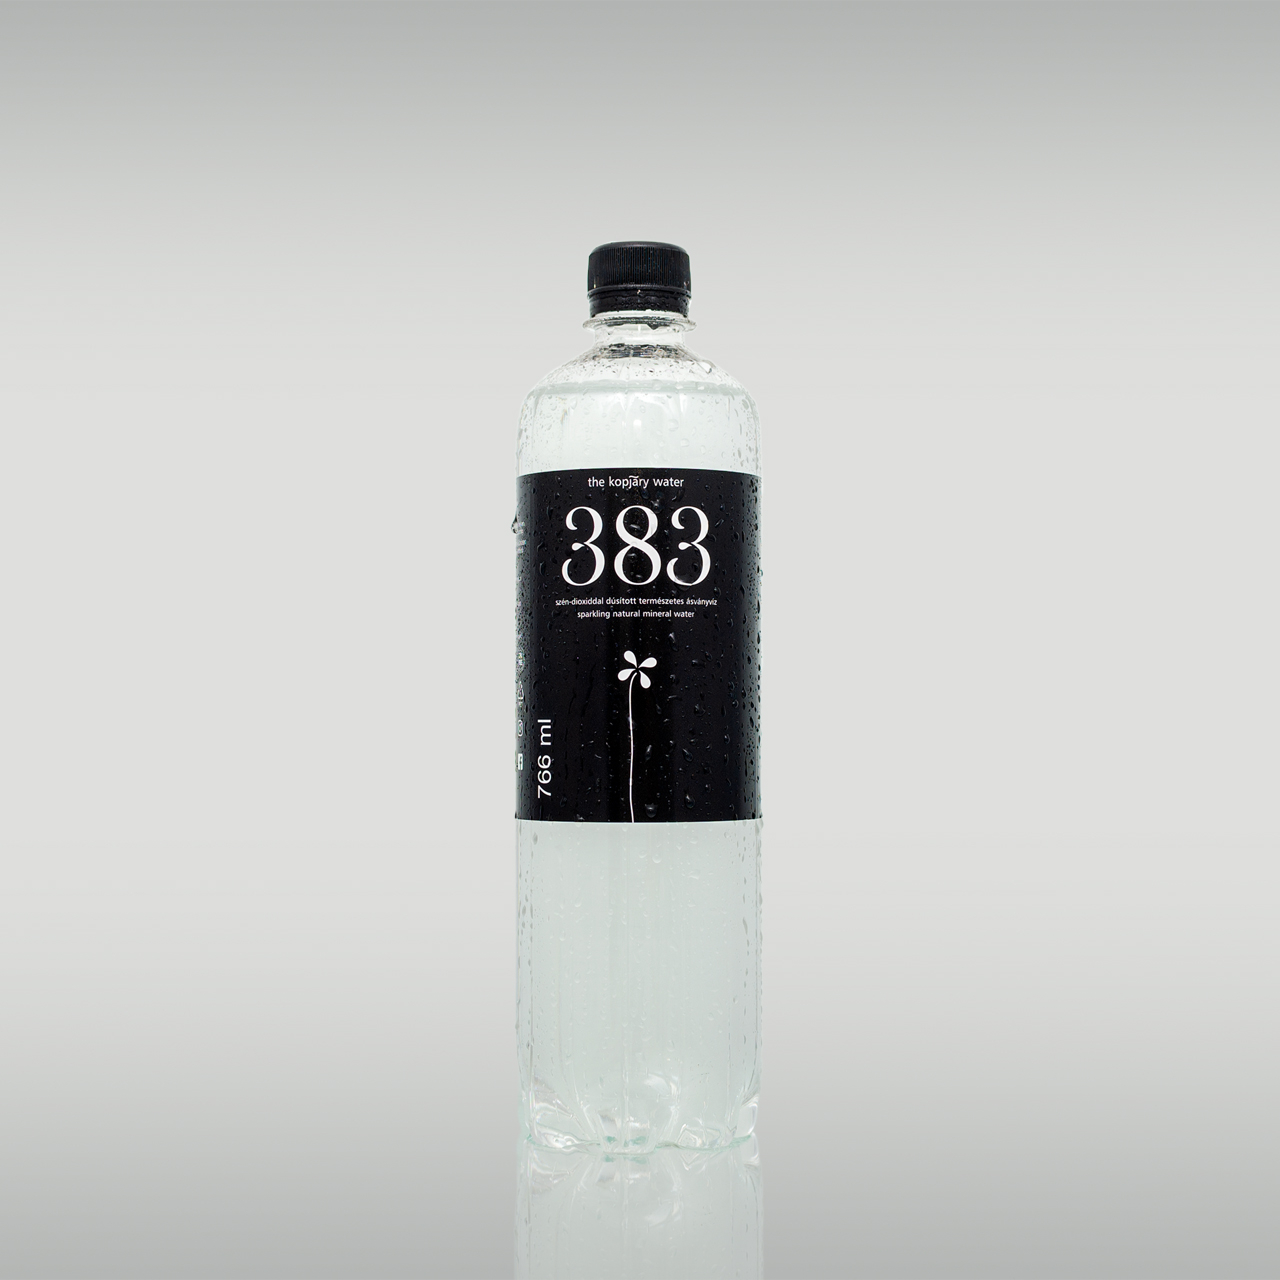 383 THE KOPJARY WATER szénsavas 766 ml